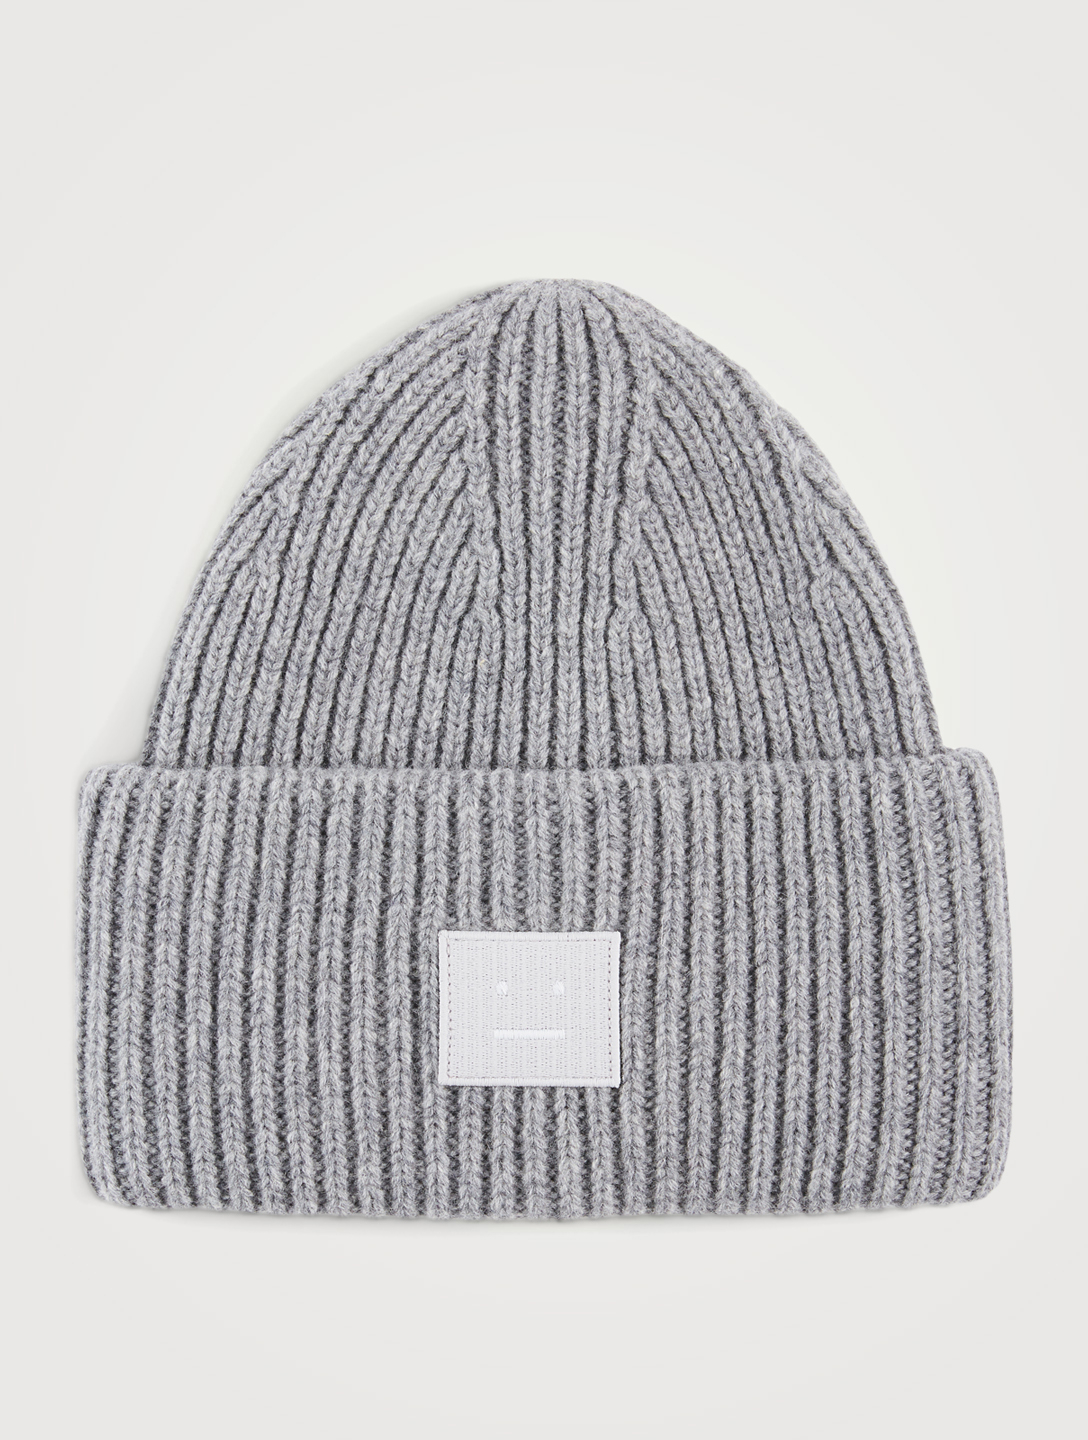 ACNE STUDIOS Face Patch Wool Toque Men's Grey